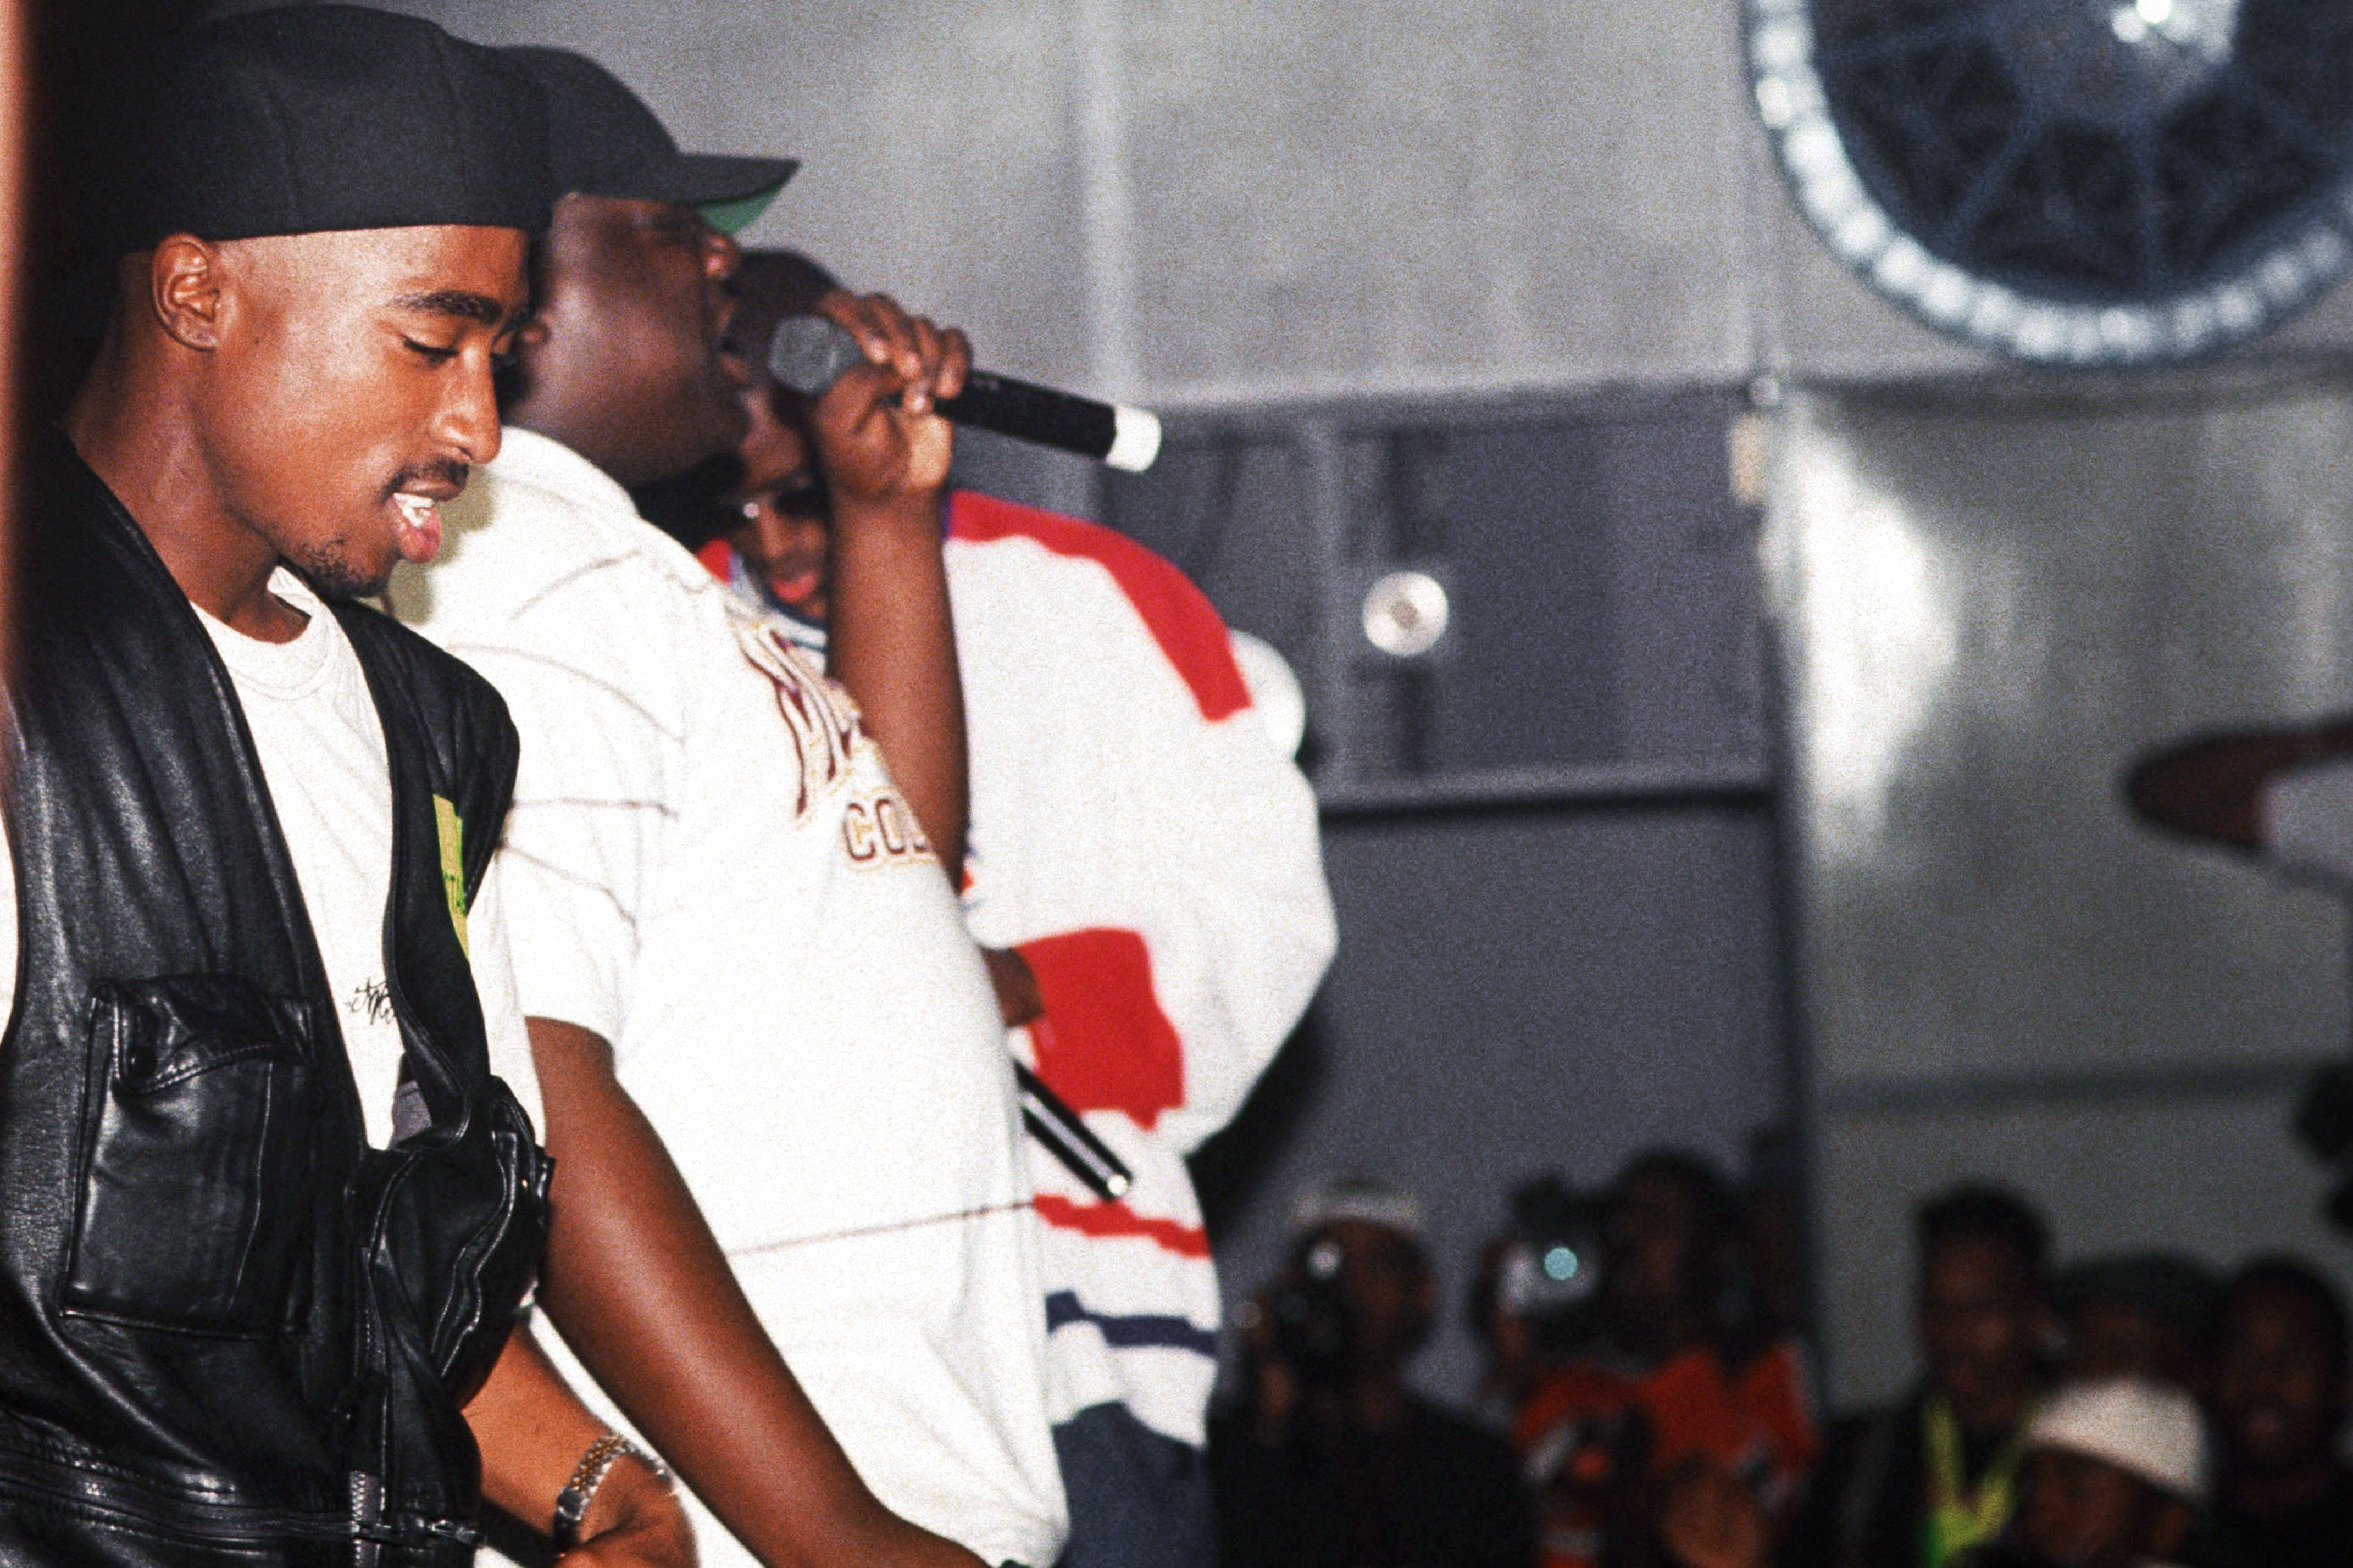 2Pac, Biggie, and Diddy onstage at New York City's Palladium in 1993